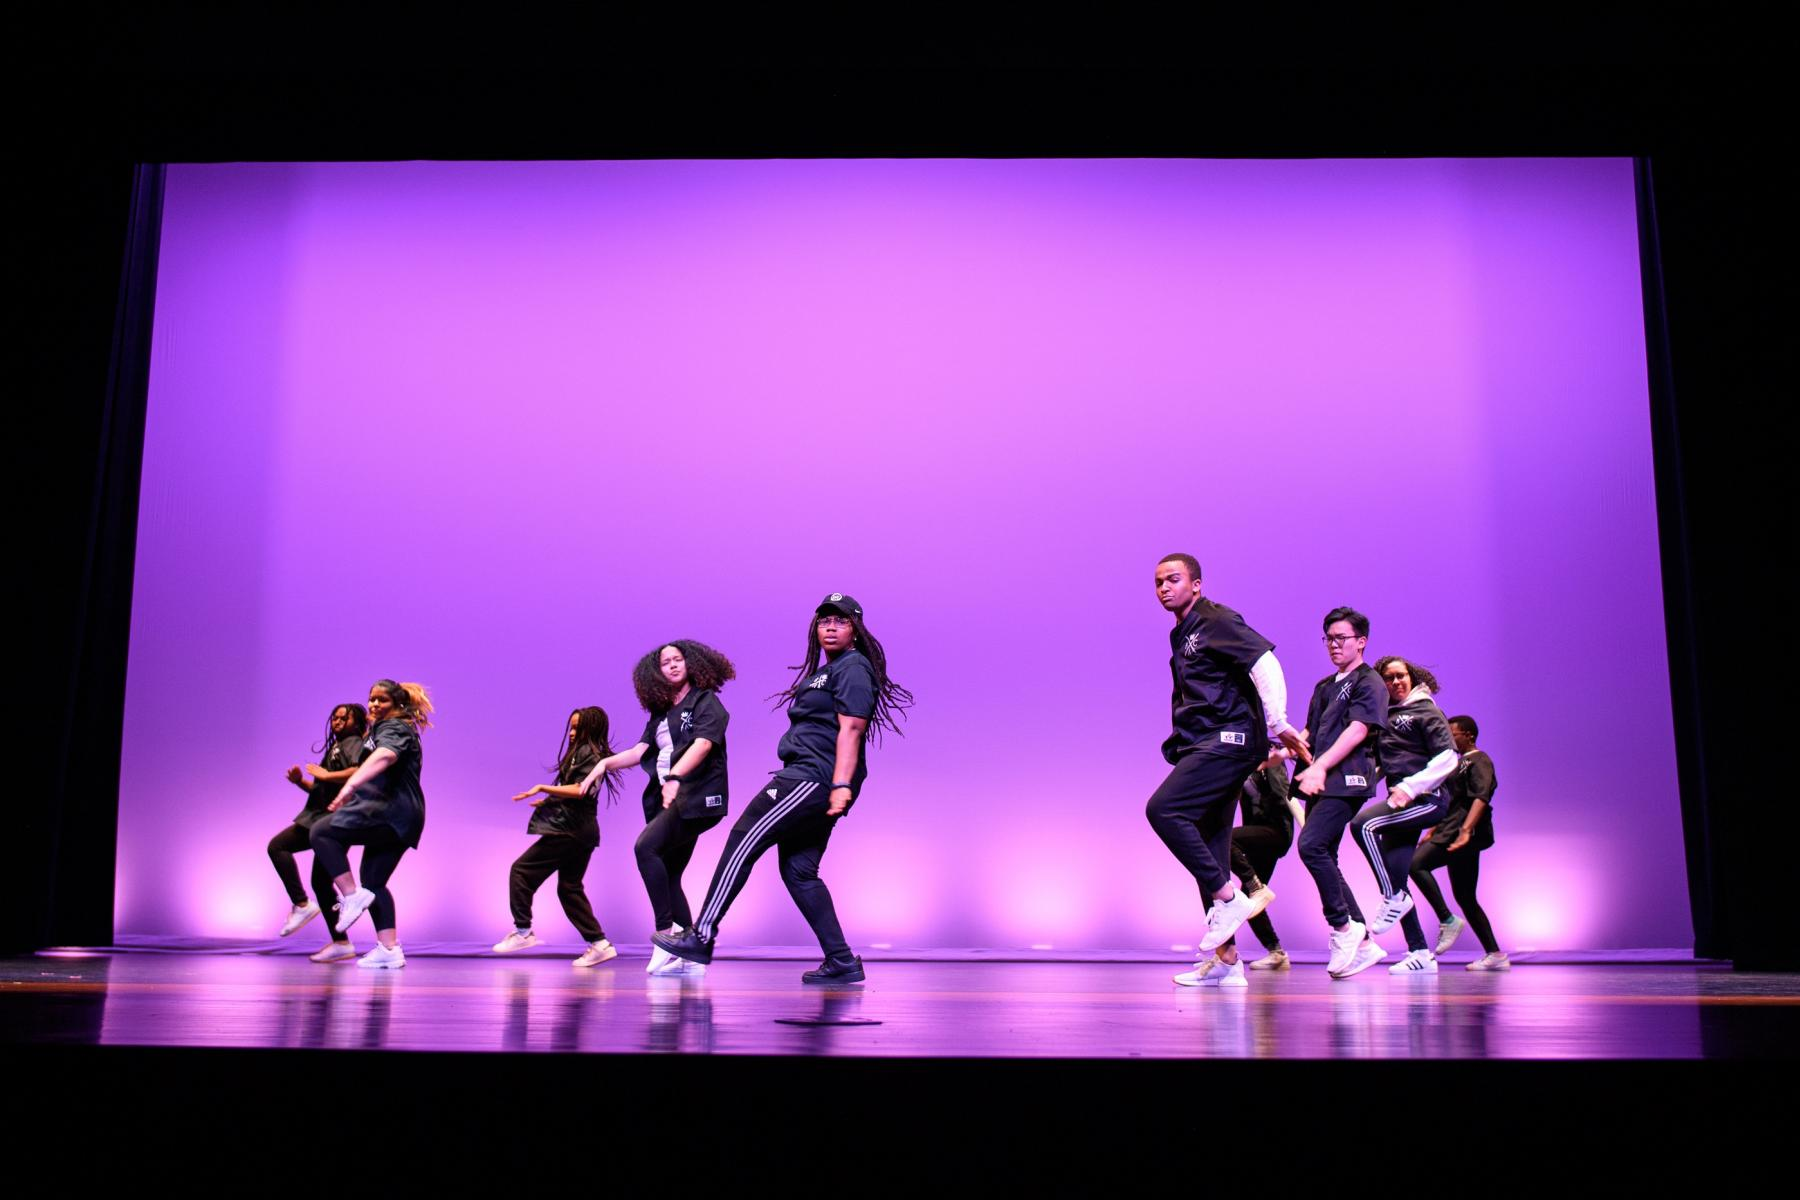 Student group performing a dance on stage